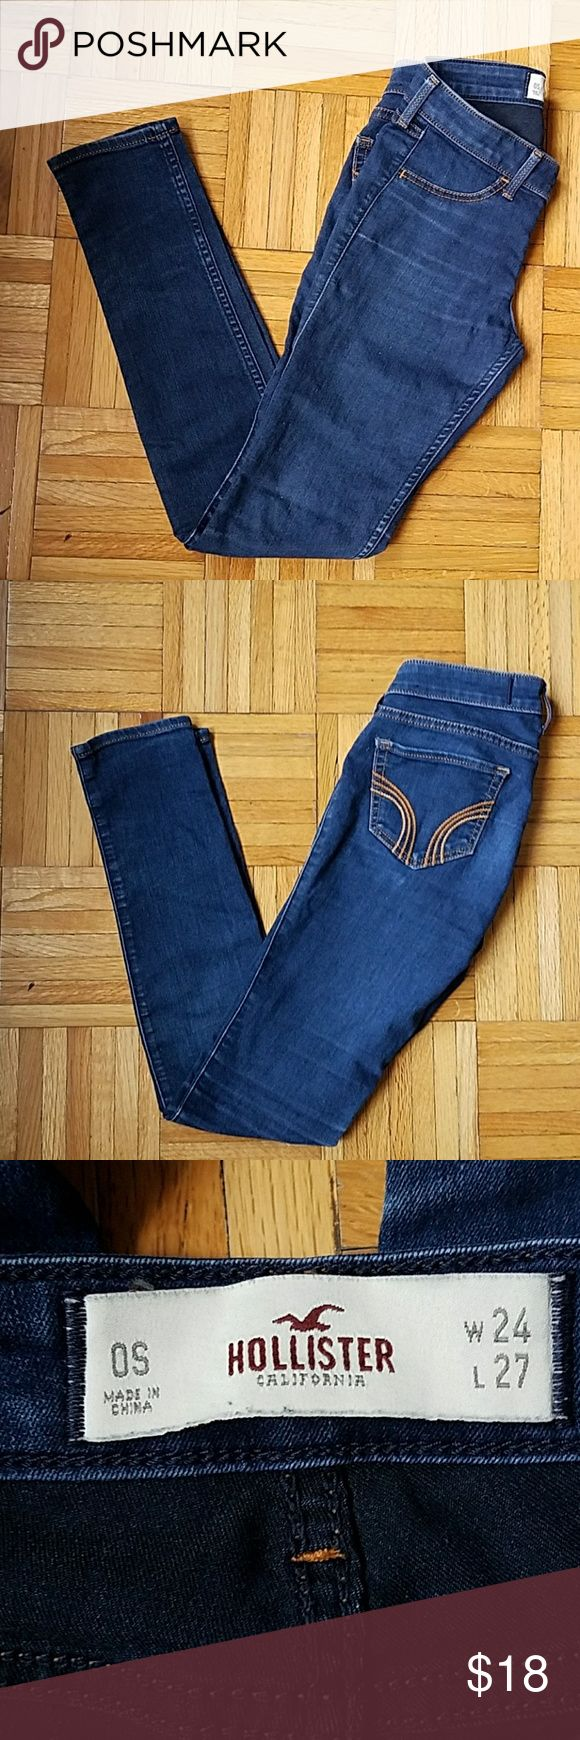 Last chance! Hollister Ultimate Stretch Jeggings Hollister Ultimate Stretch Jeggings  -very comfy and good stretch Jeggings from Hollister -worn twice -lightly distressed wash (distress at knees and on 2 back pockets -waist=24 Hollister Jeans